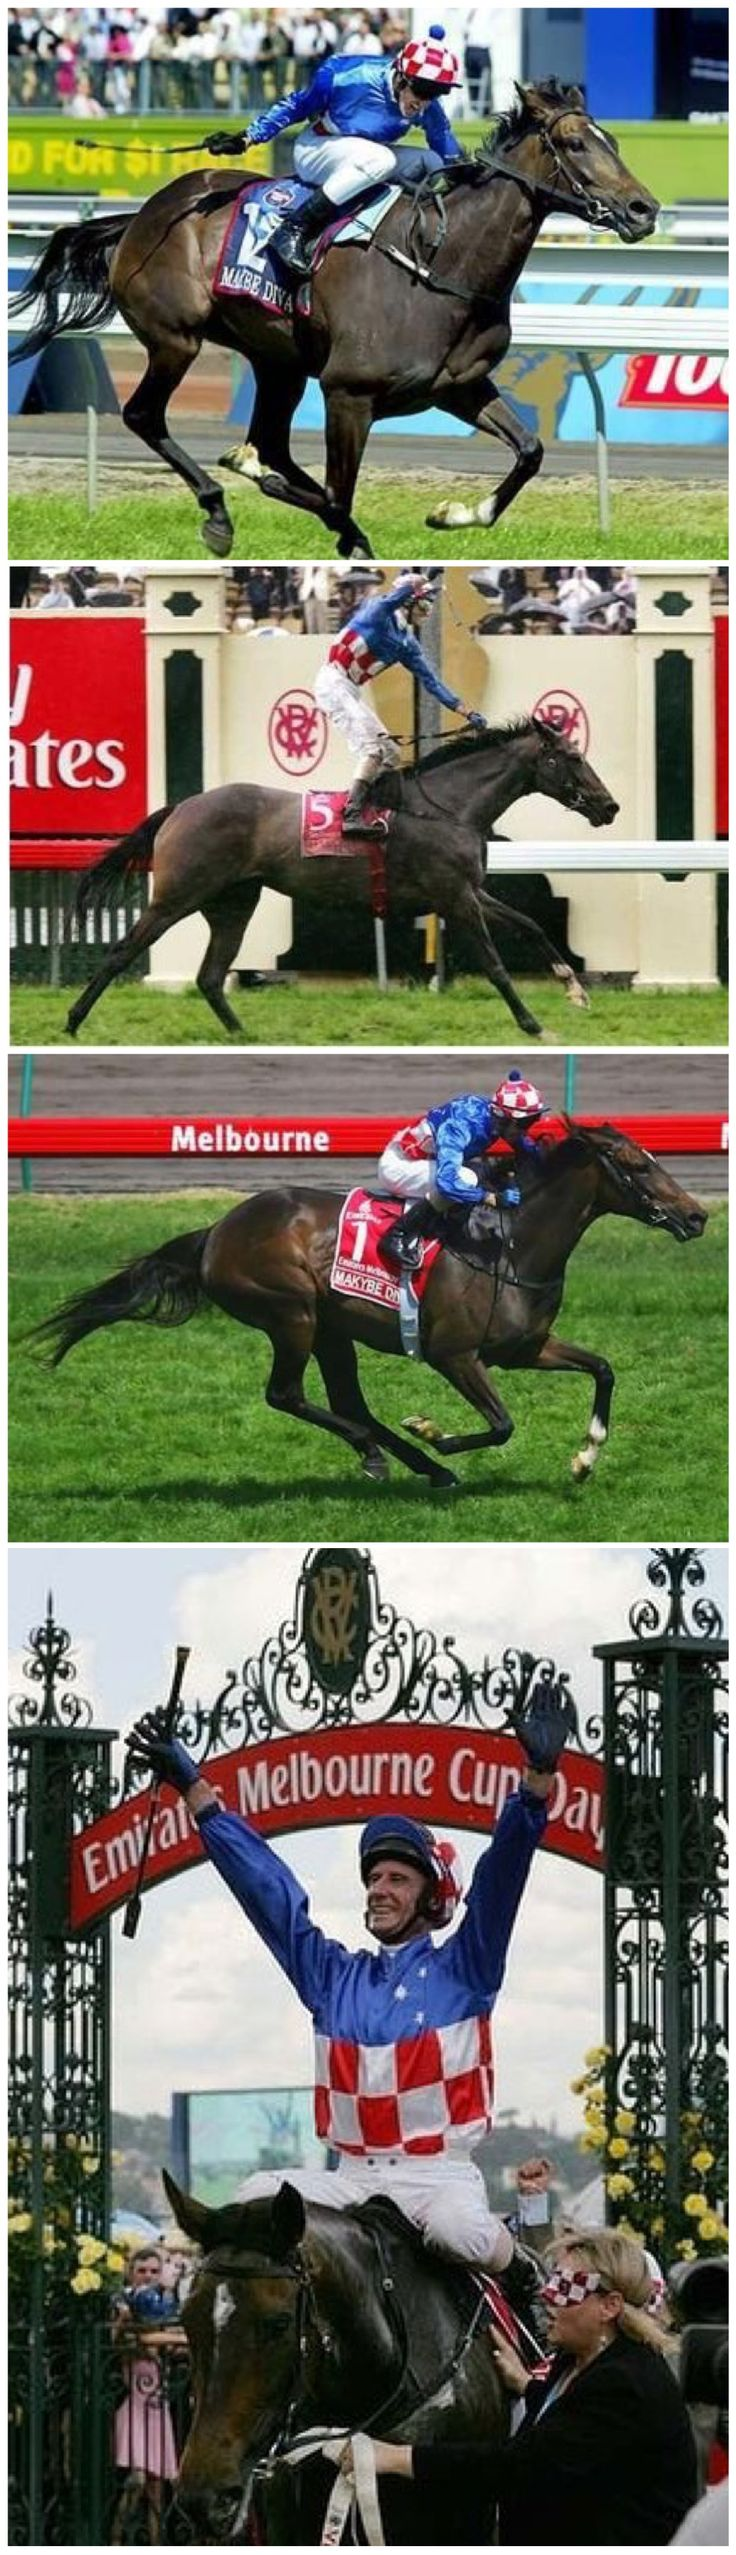 Makybe Diva, winning her three consecutive Melbourne Cups 2003-2005, ridden by Glenn Boss. Bottom: Returning to scale after the 2005 win.